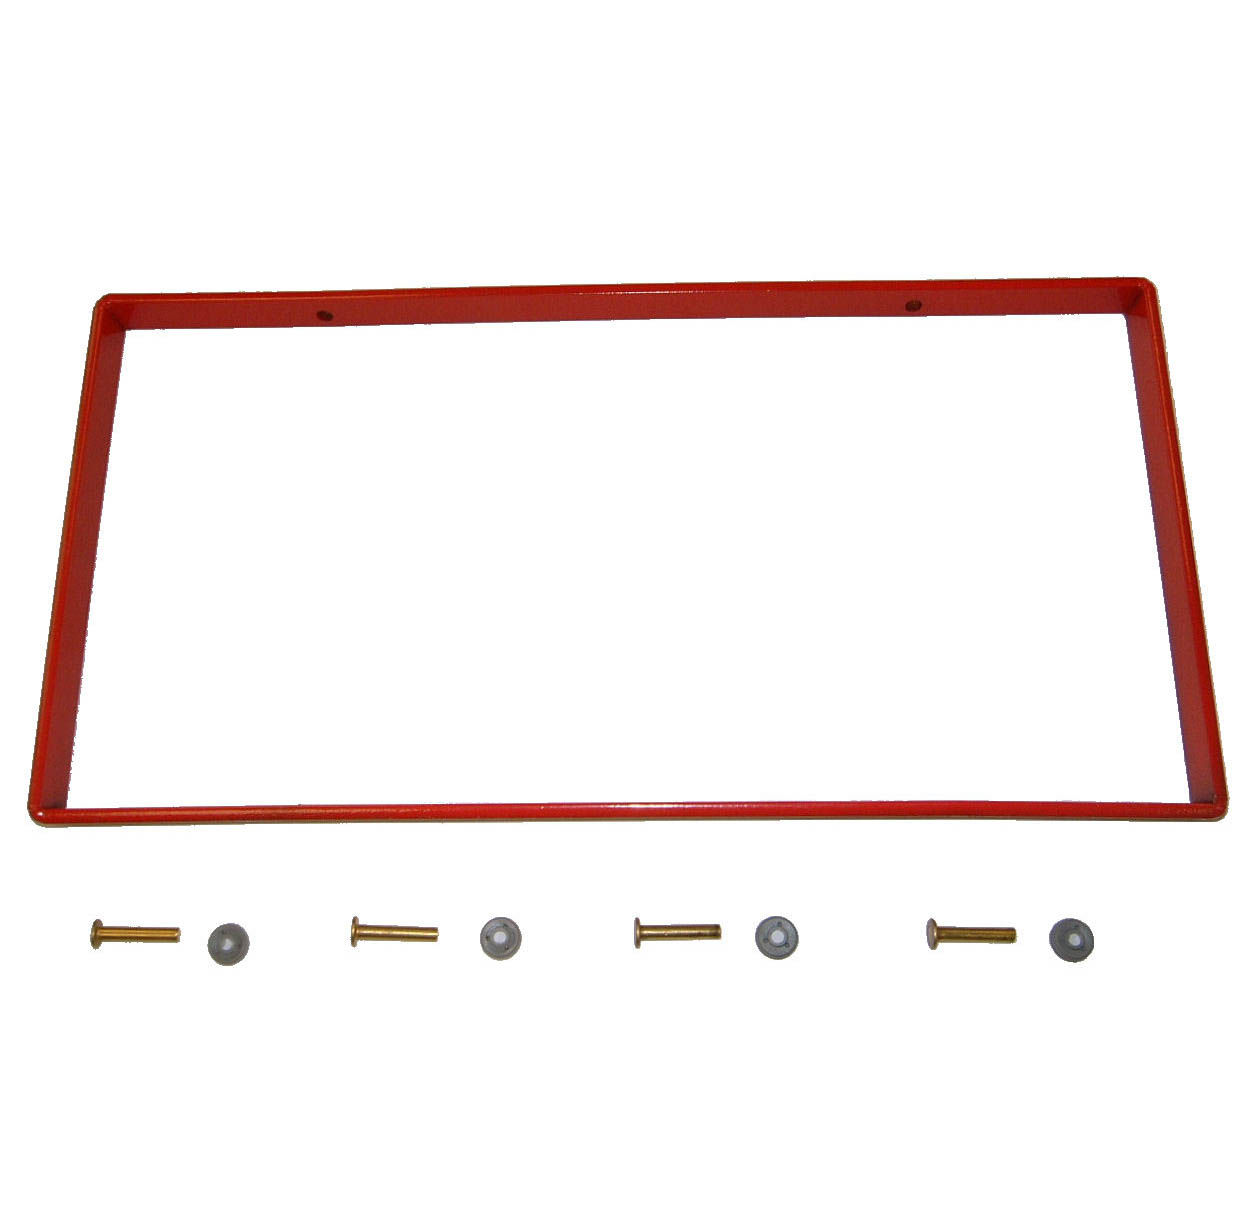 K6 LARGE STEEL GLAZING FRAME KIT X 5